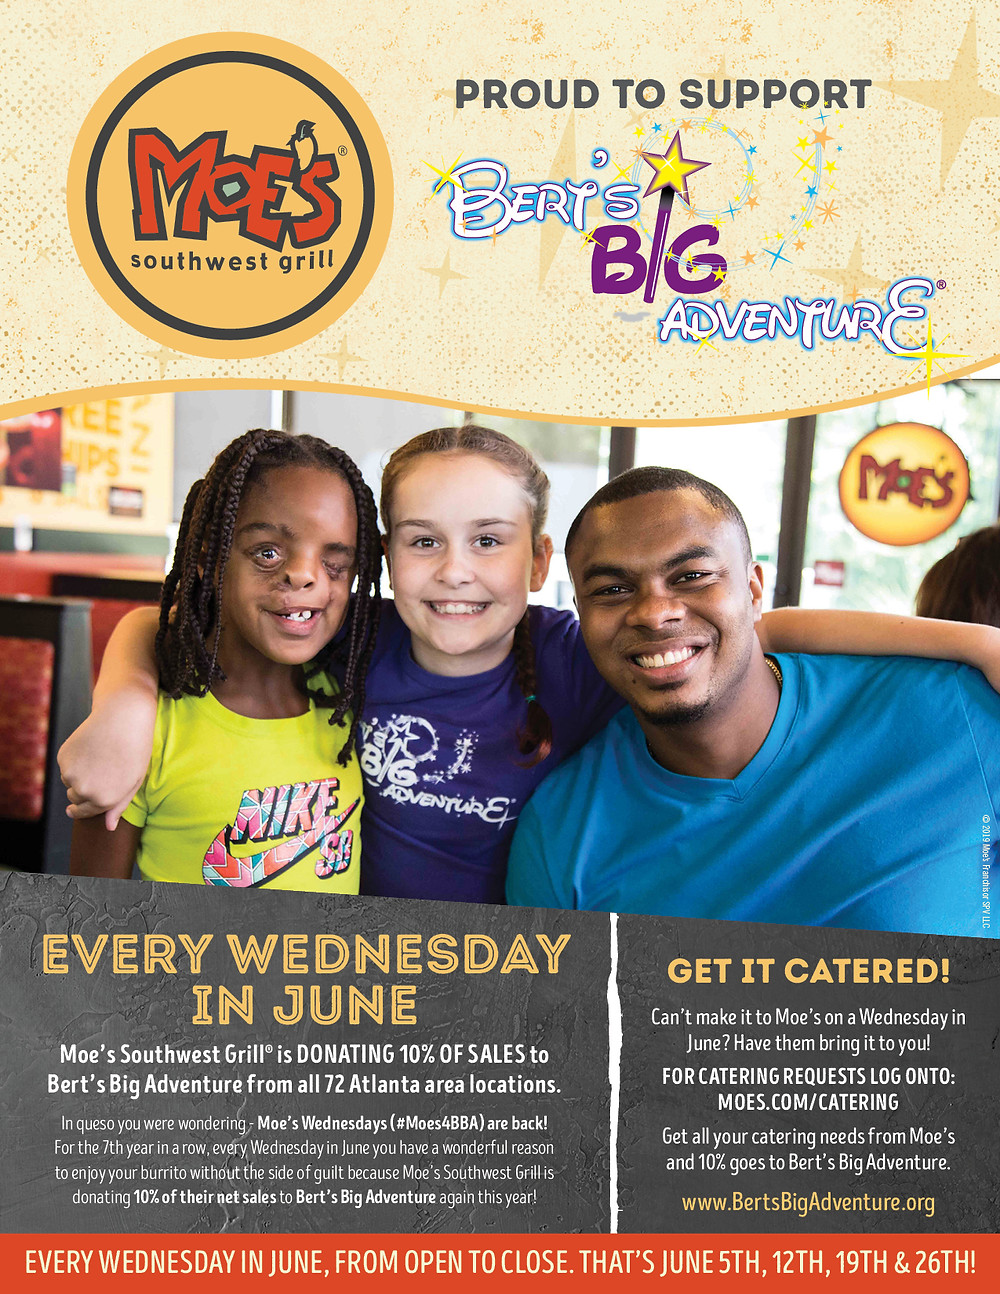 TOMORROW: Dine Out at Moe's to Benefit Bert's Big Adventure